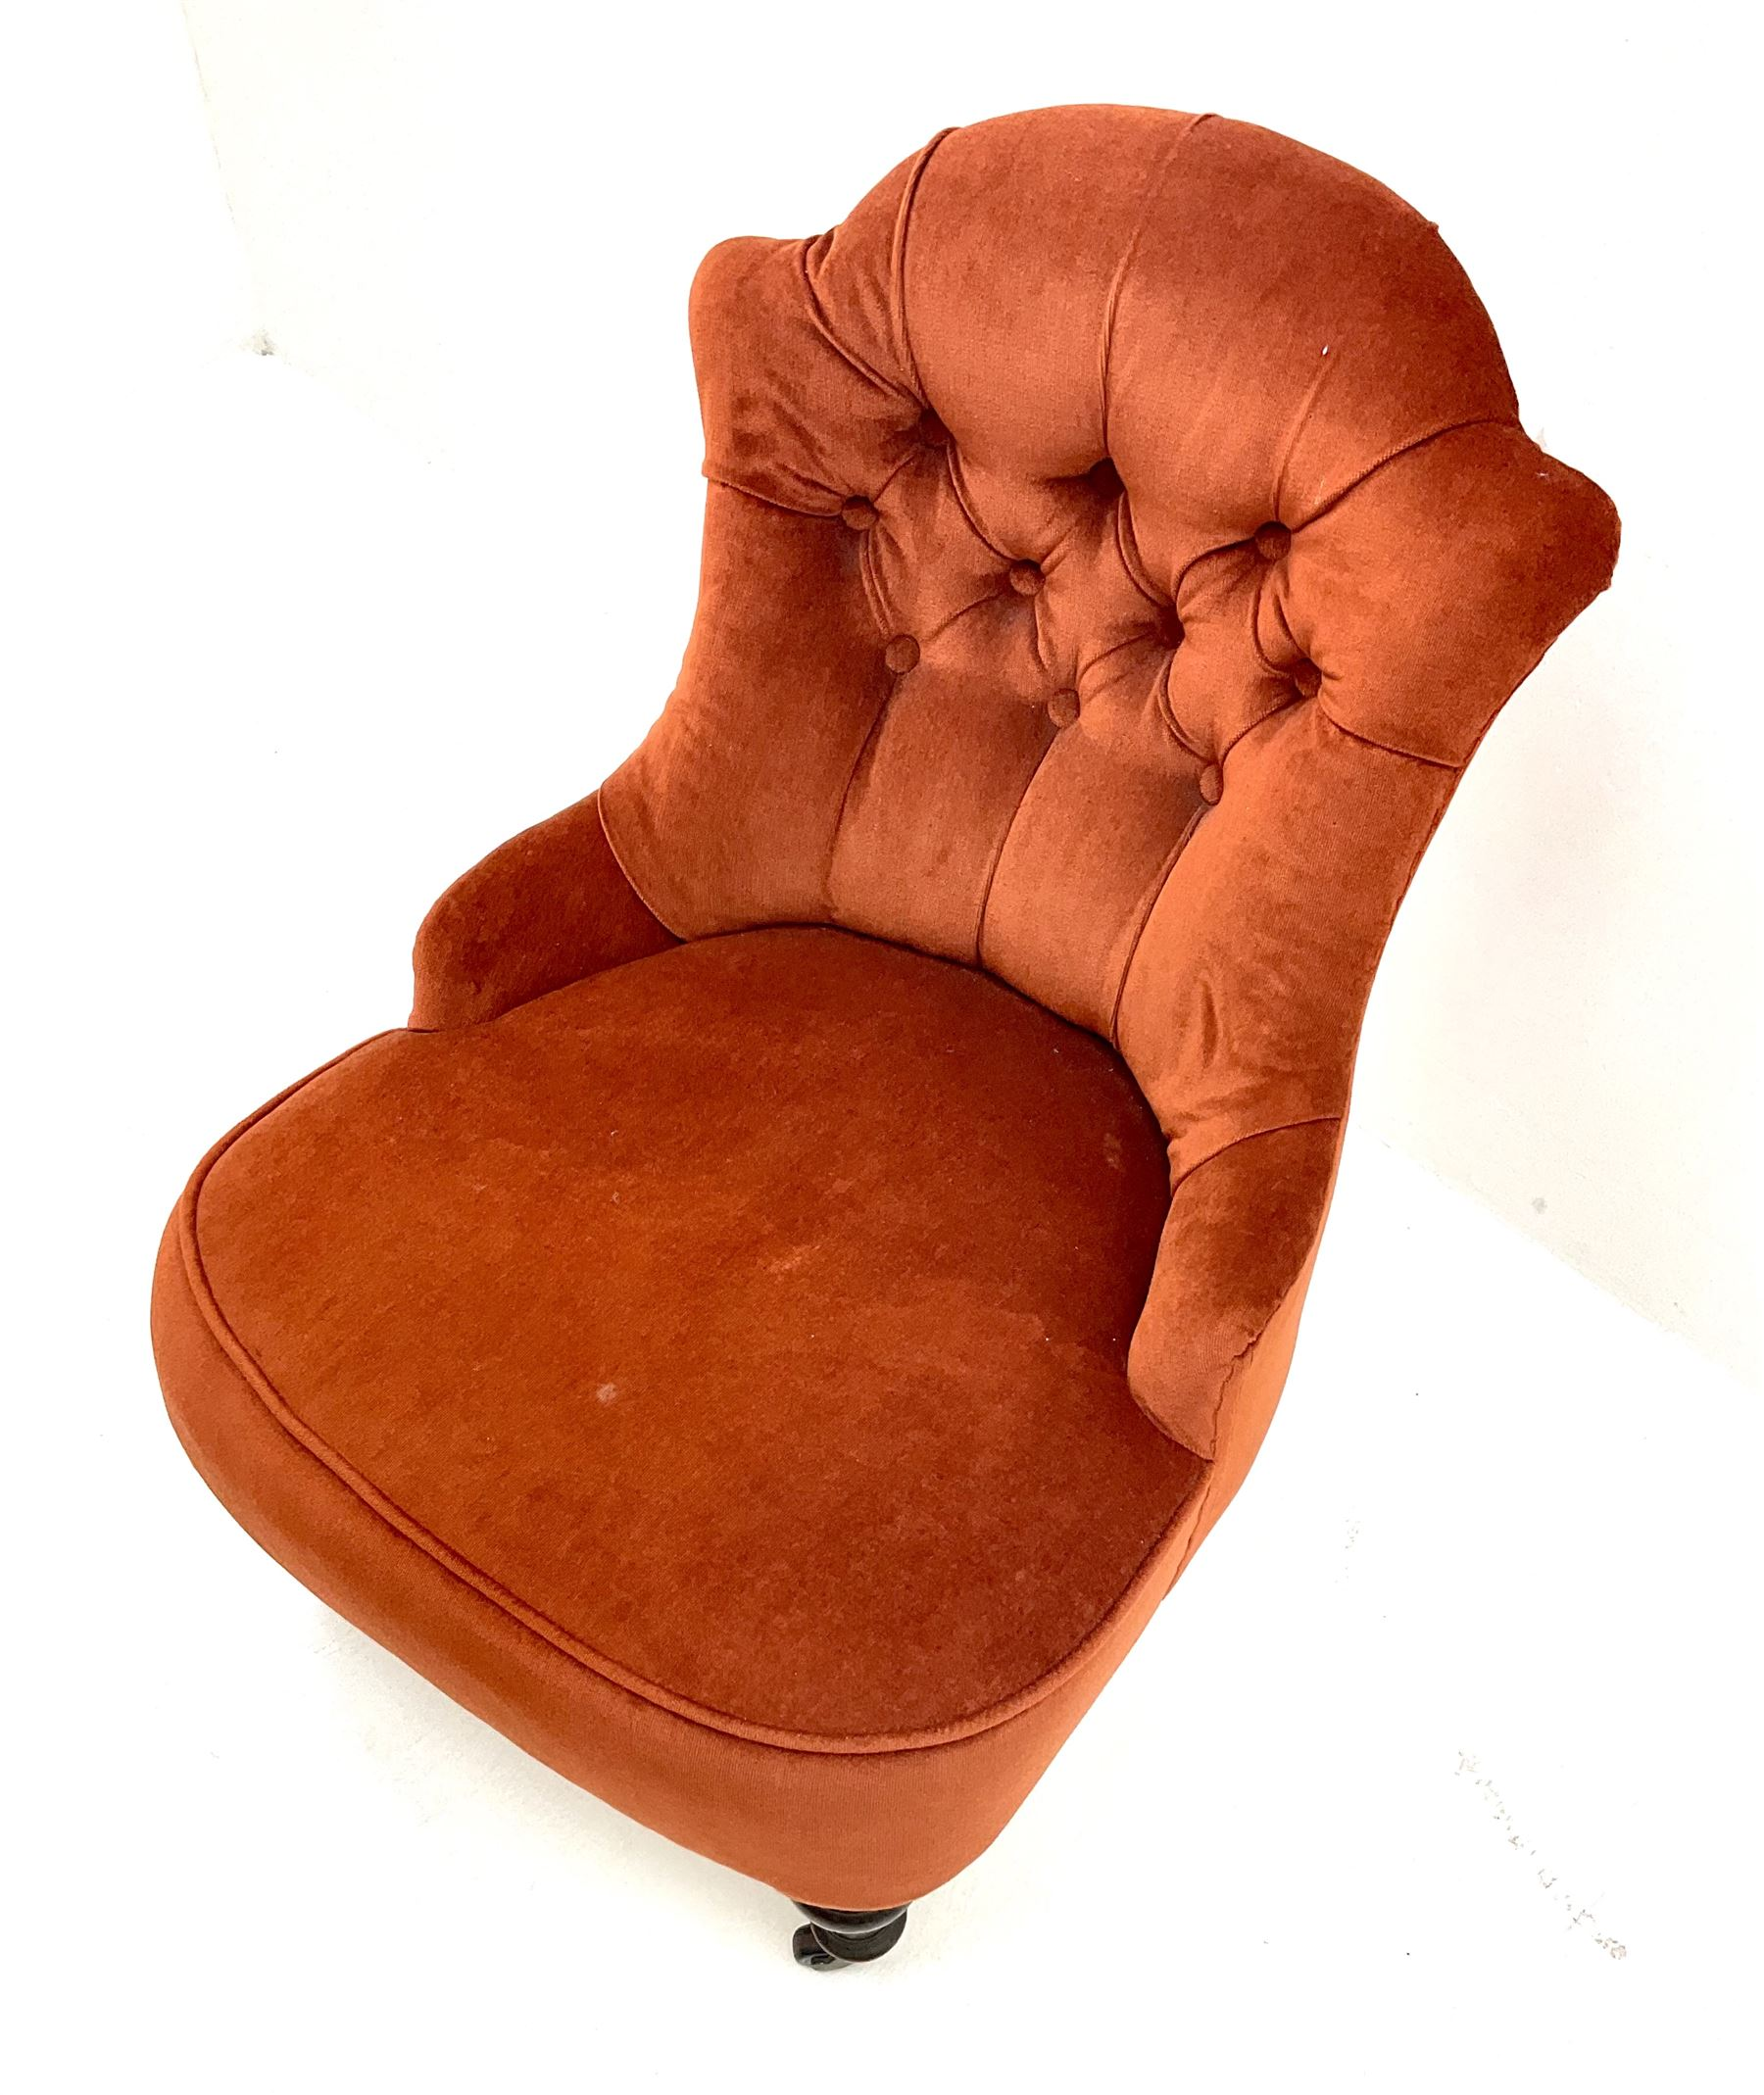 Victorian nursing chair upholstered in a buttoned terracotta fabric - Image 2 of 3